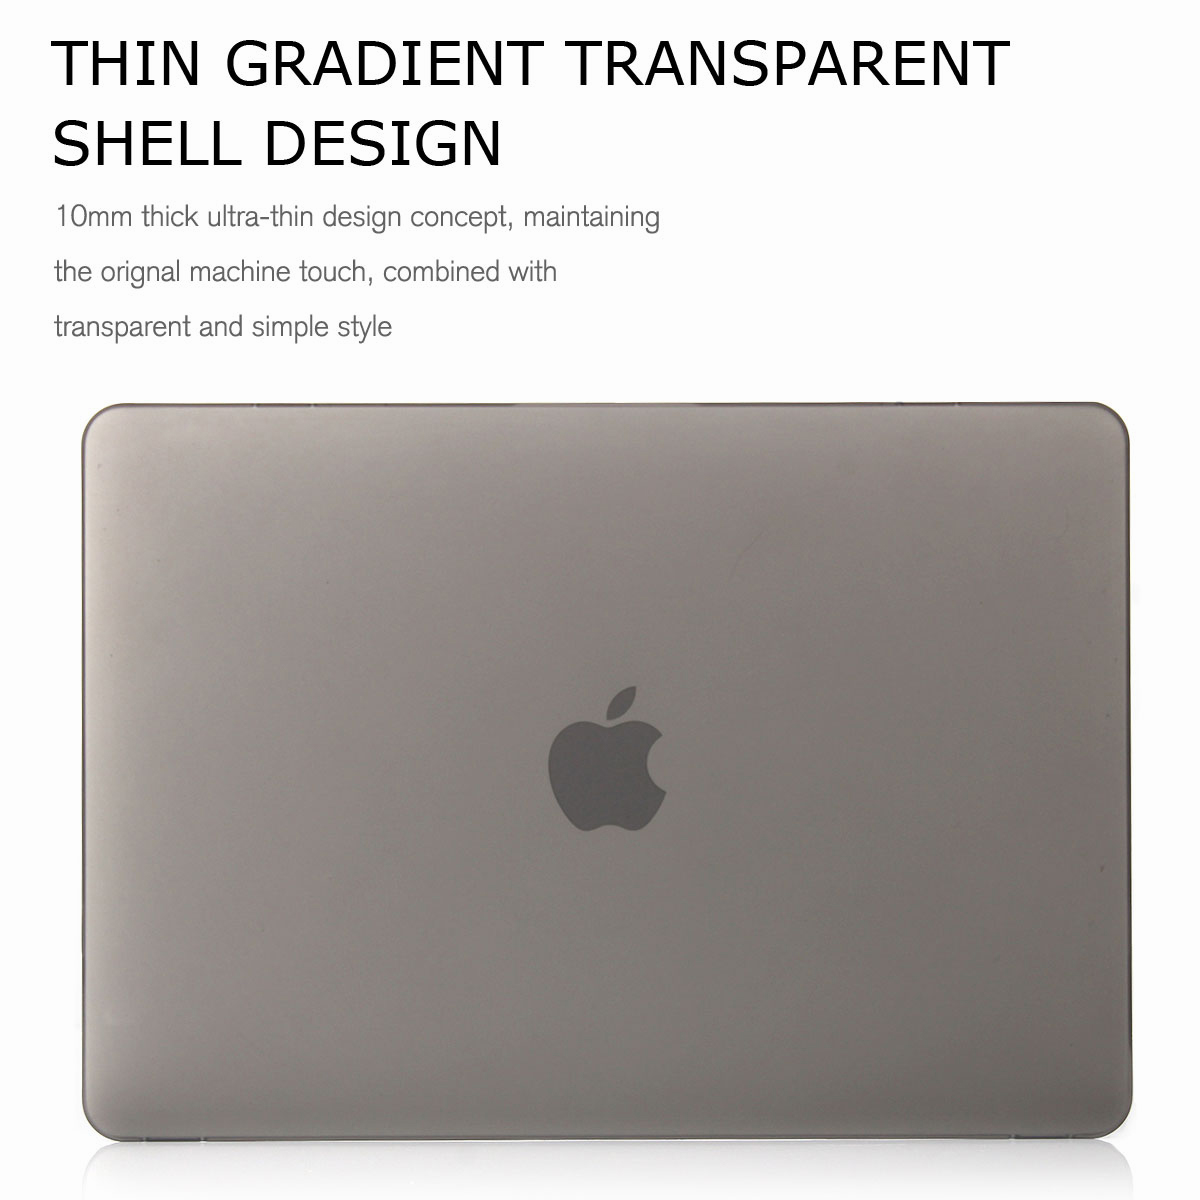 Shockproof-Rubberized-Matte-Hard-Case-Cover-For-Macbook-13-034-15-034-Inch-A1286-A1278 thumbnail 46